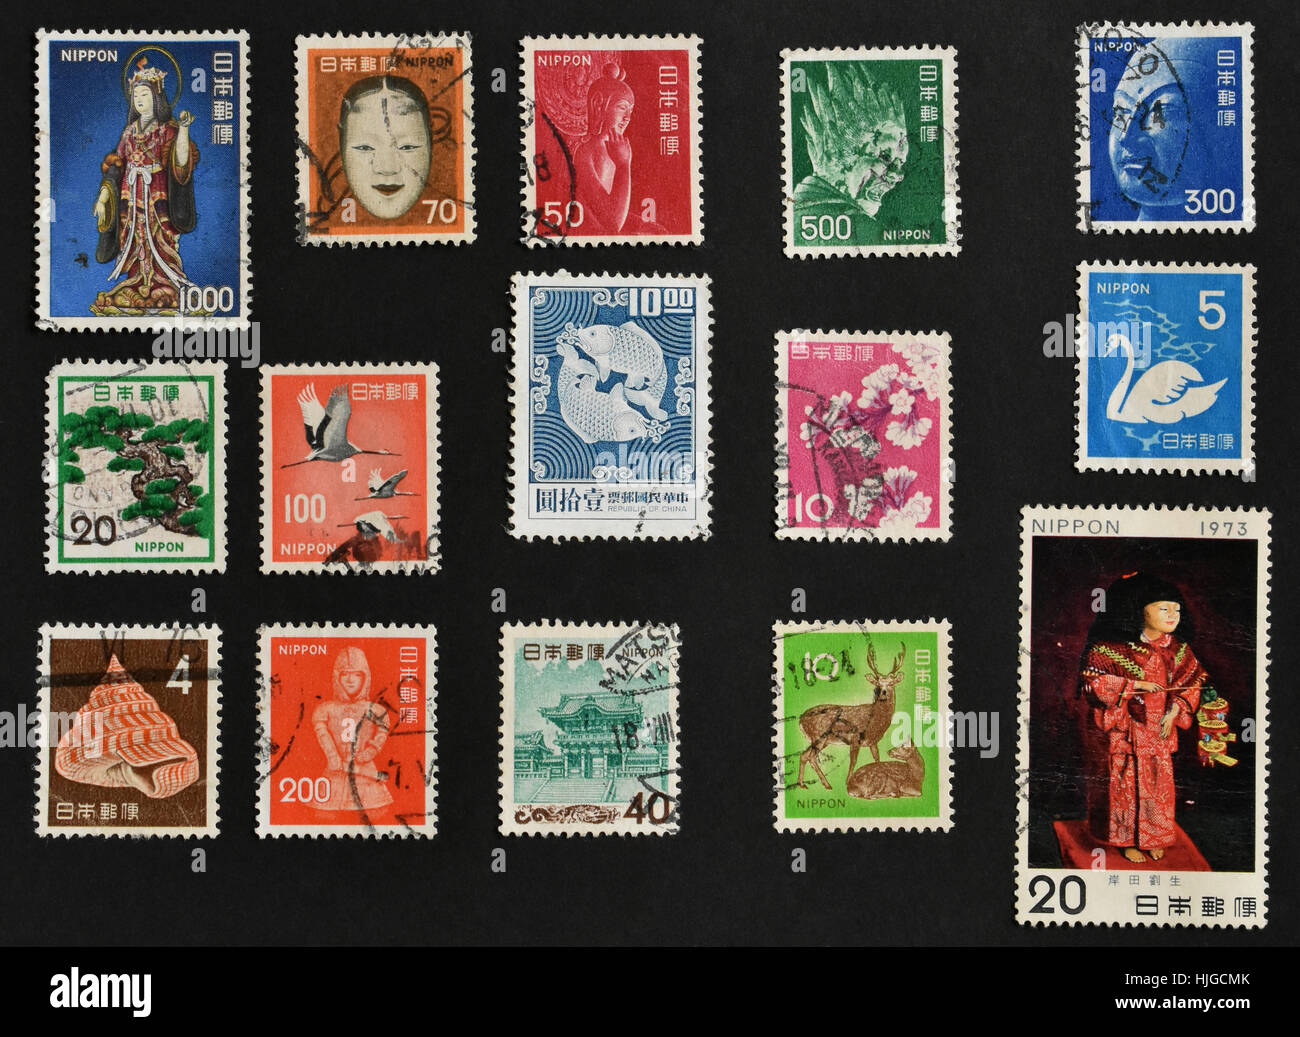 Used stamps of Nippon - Stock Image